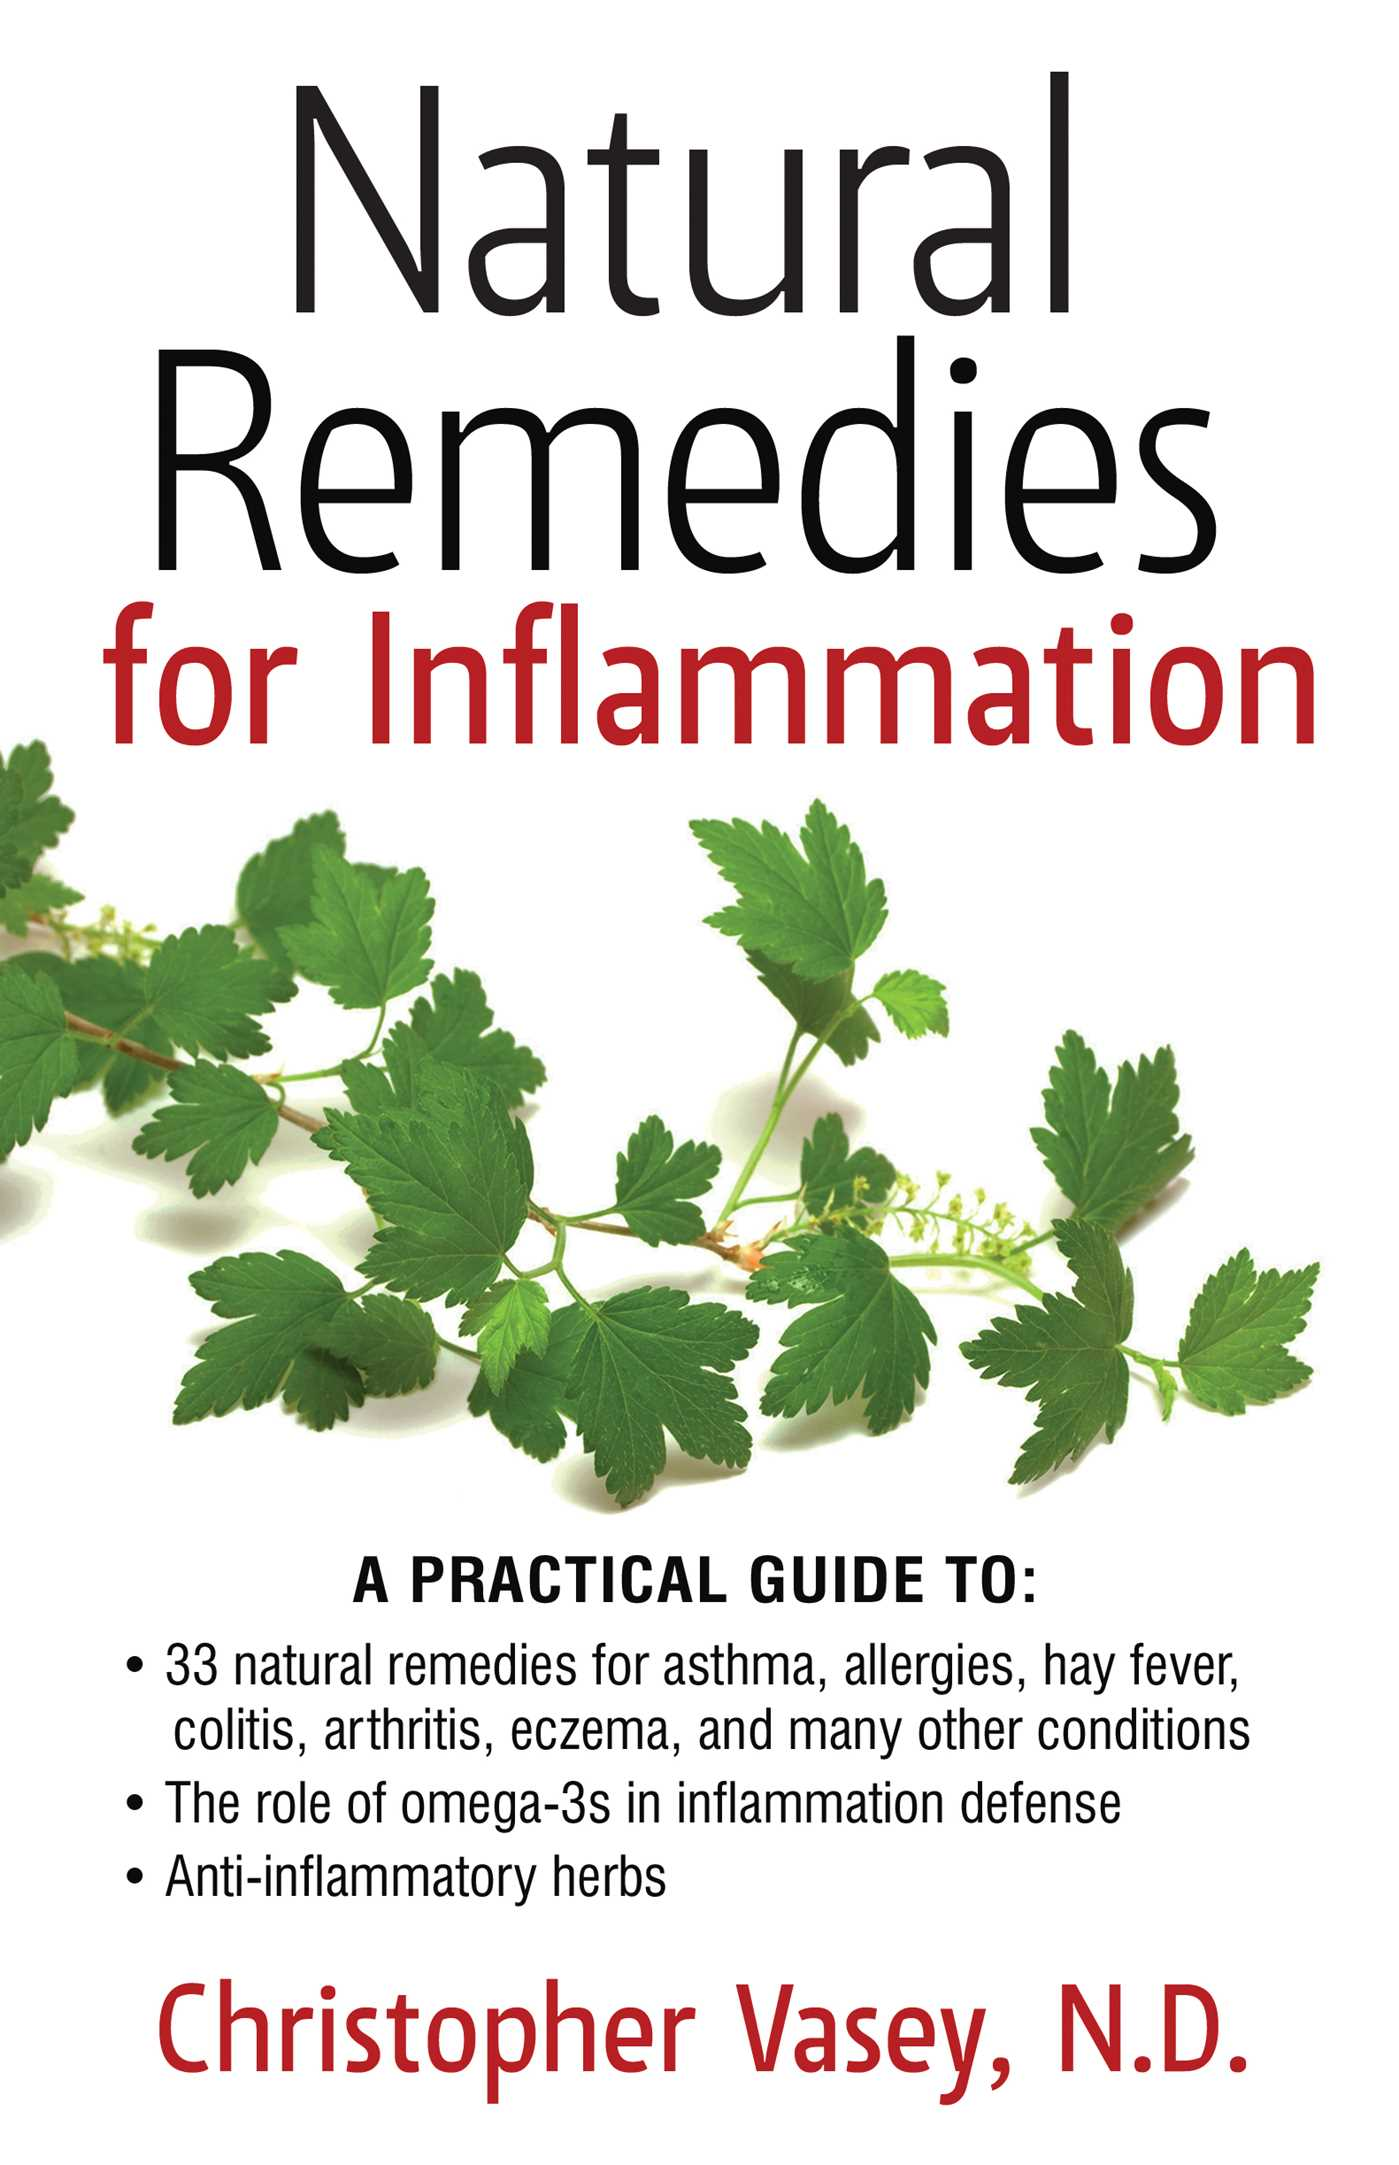 Natural-remedies-for-inflammation-9781620553237_hr